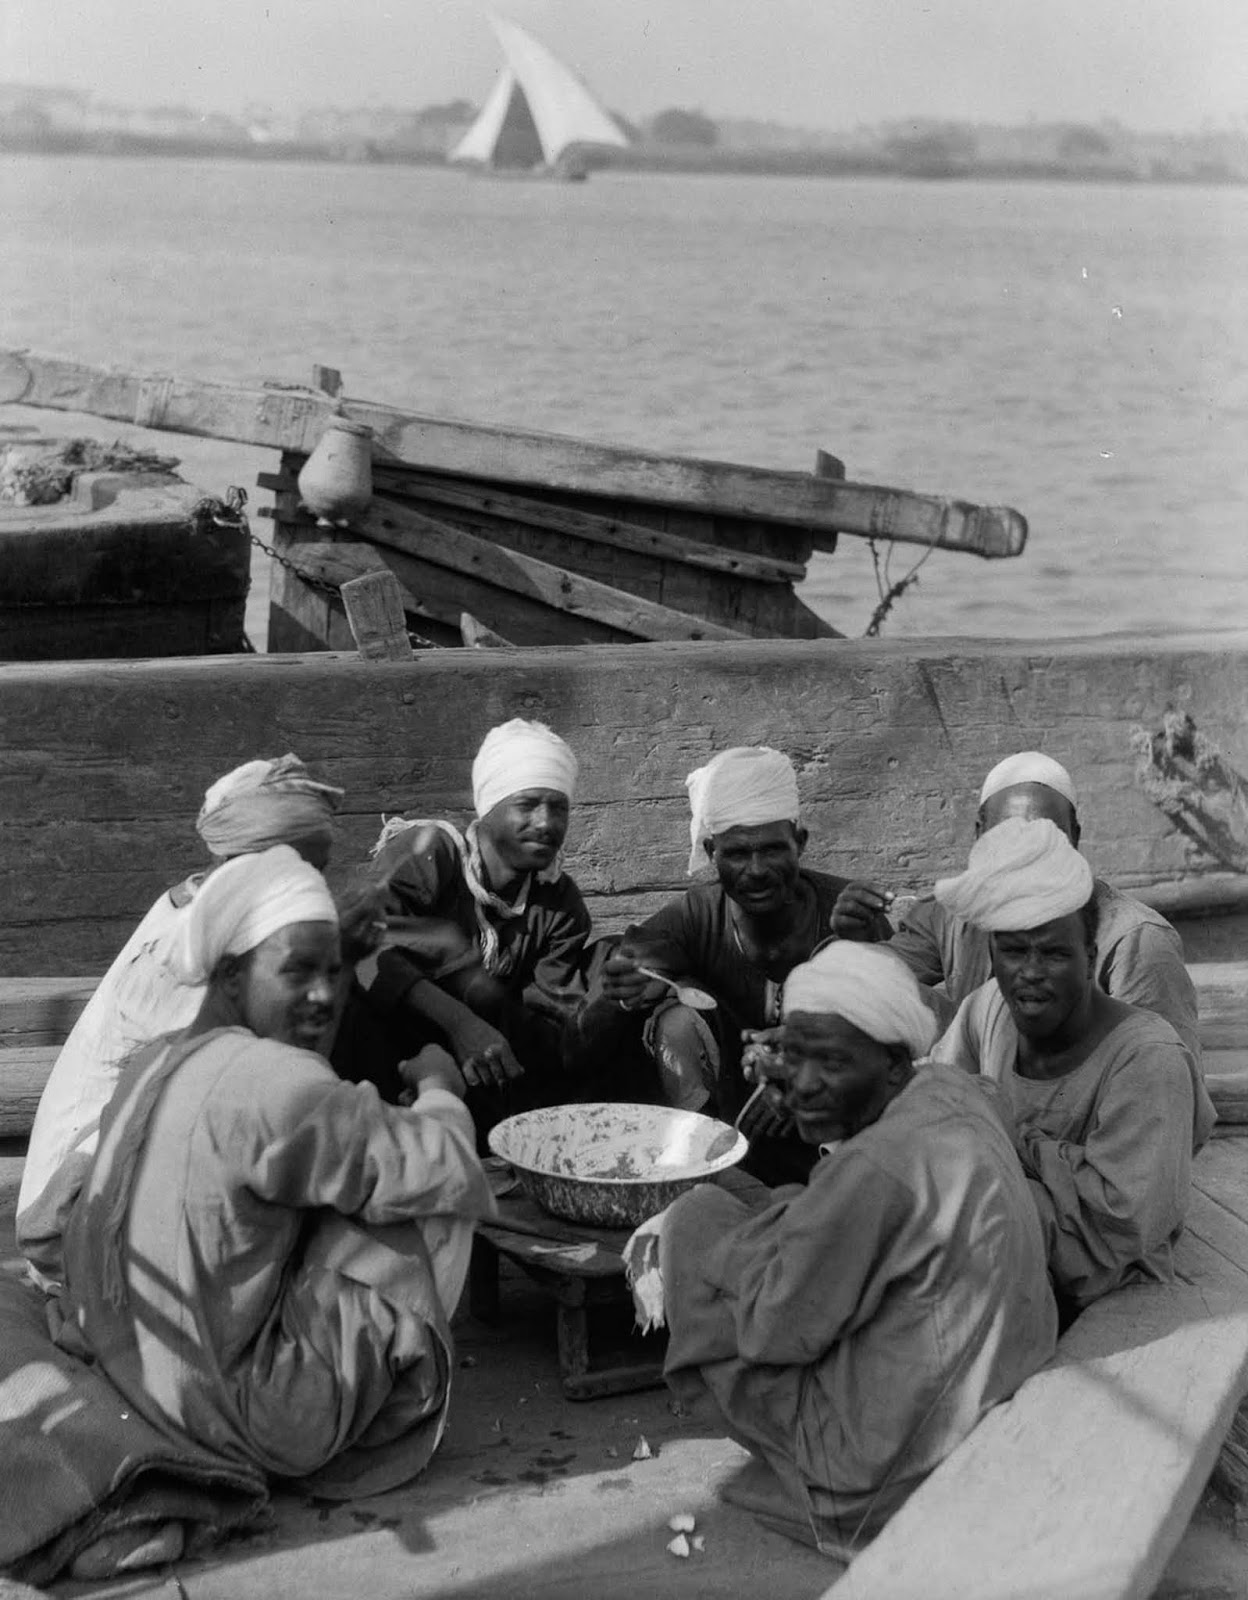 Boatmen eat lunch on the banks of the Nile. 1934.